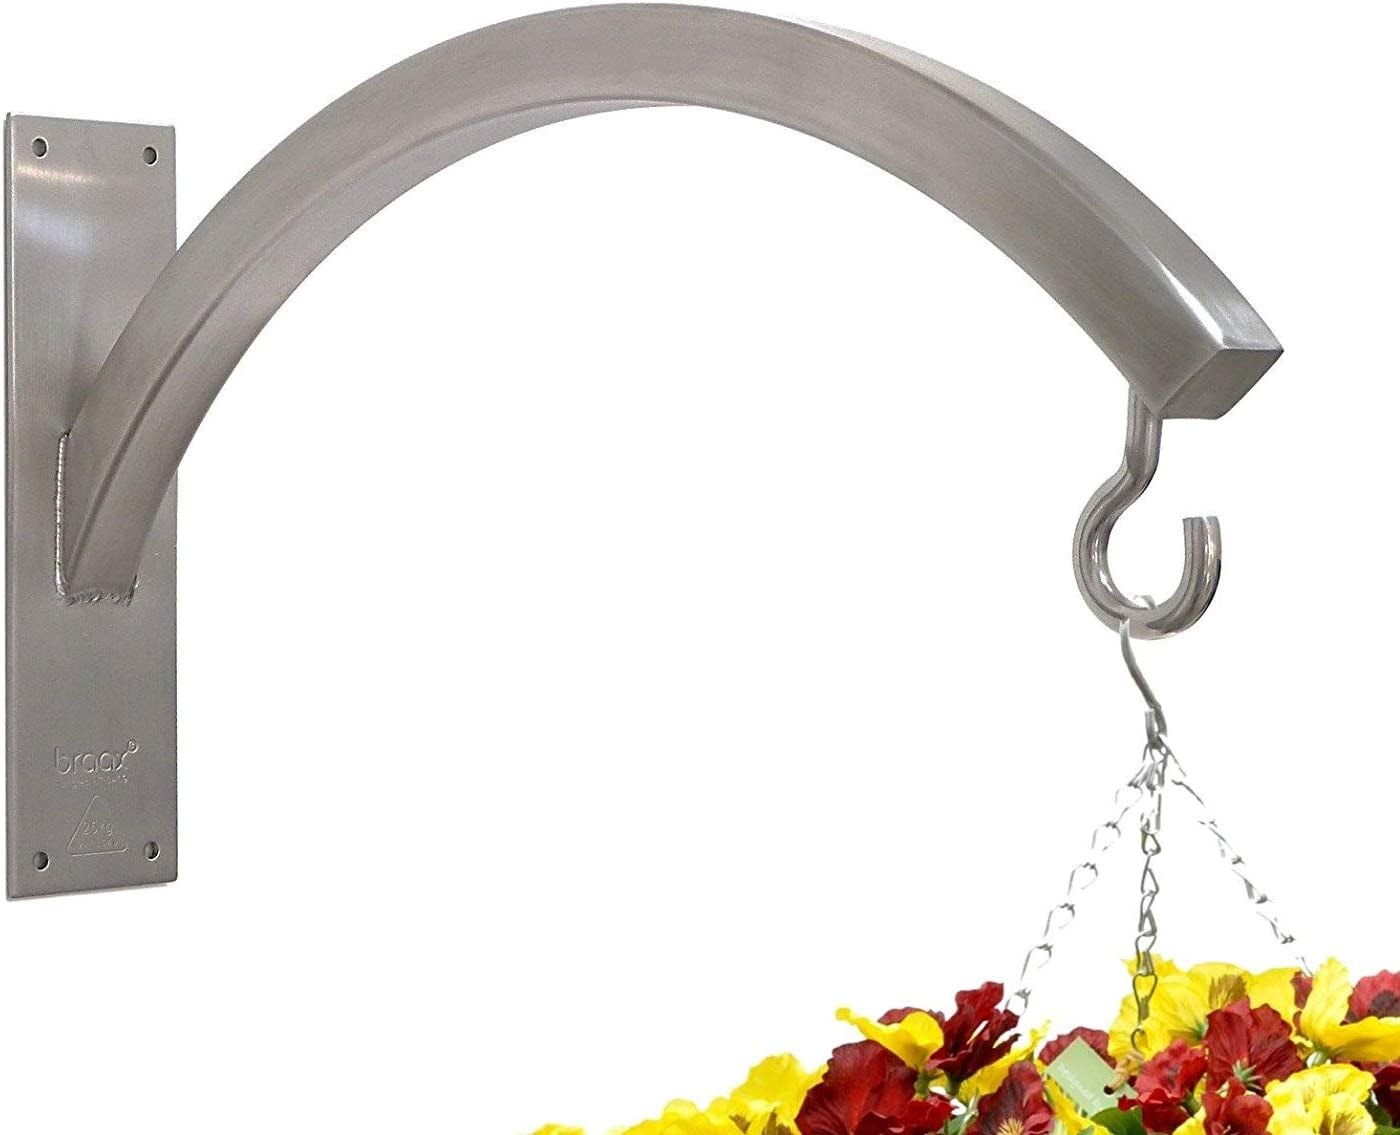 Braax Hangtec Arch Ht 3a09 Stainless Steel Wall Bracket For Hanging Baskets Topiary Balls Bird Feeders Lights Lanterns Wind Chimes Or Similar Amazon Ca Patio Lawn Garden